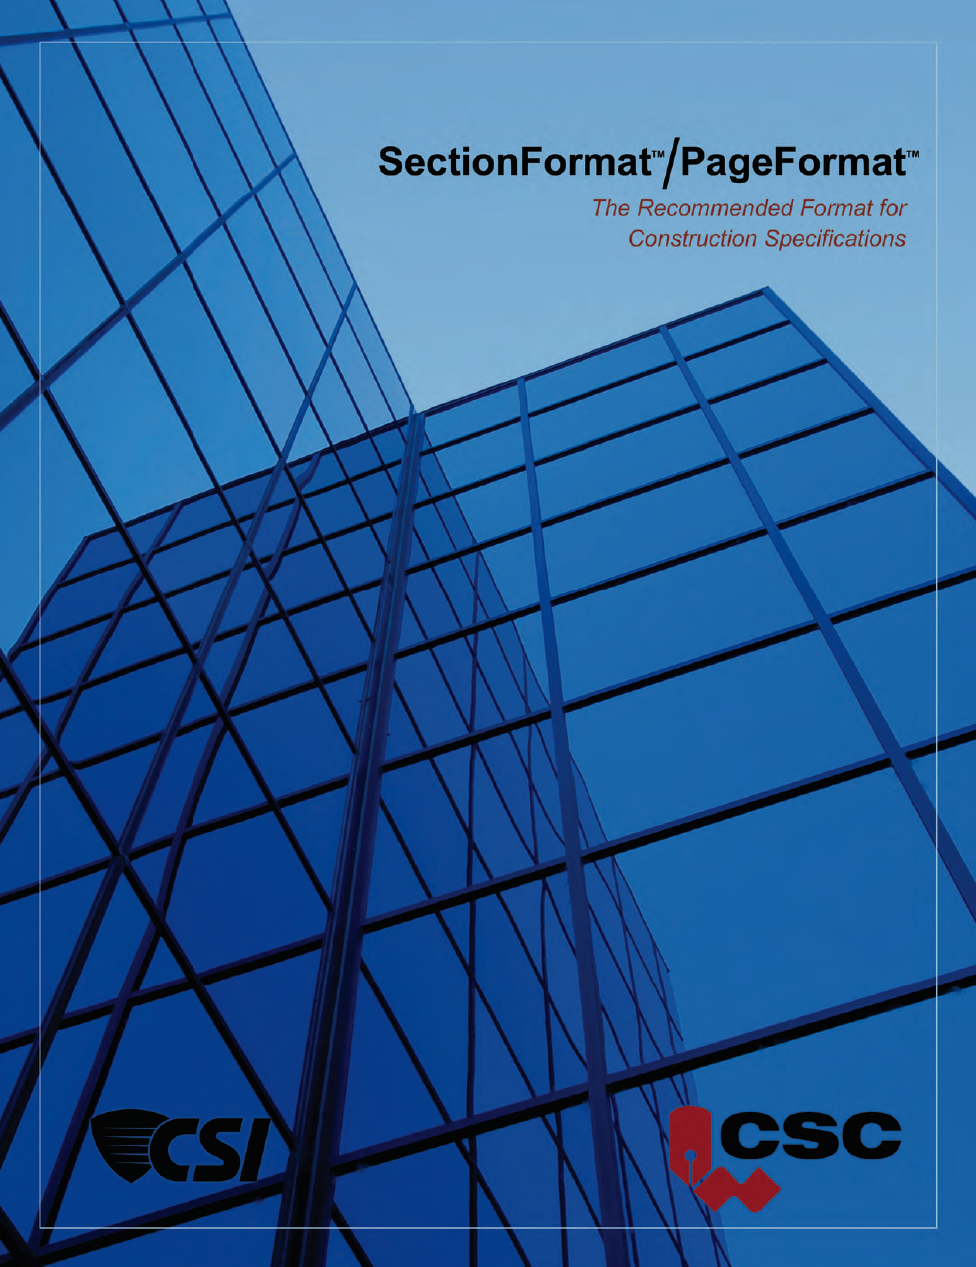 SectionFormat/PageFormat